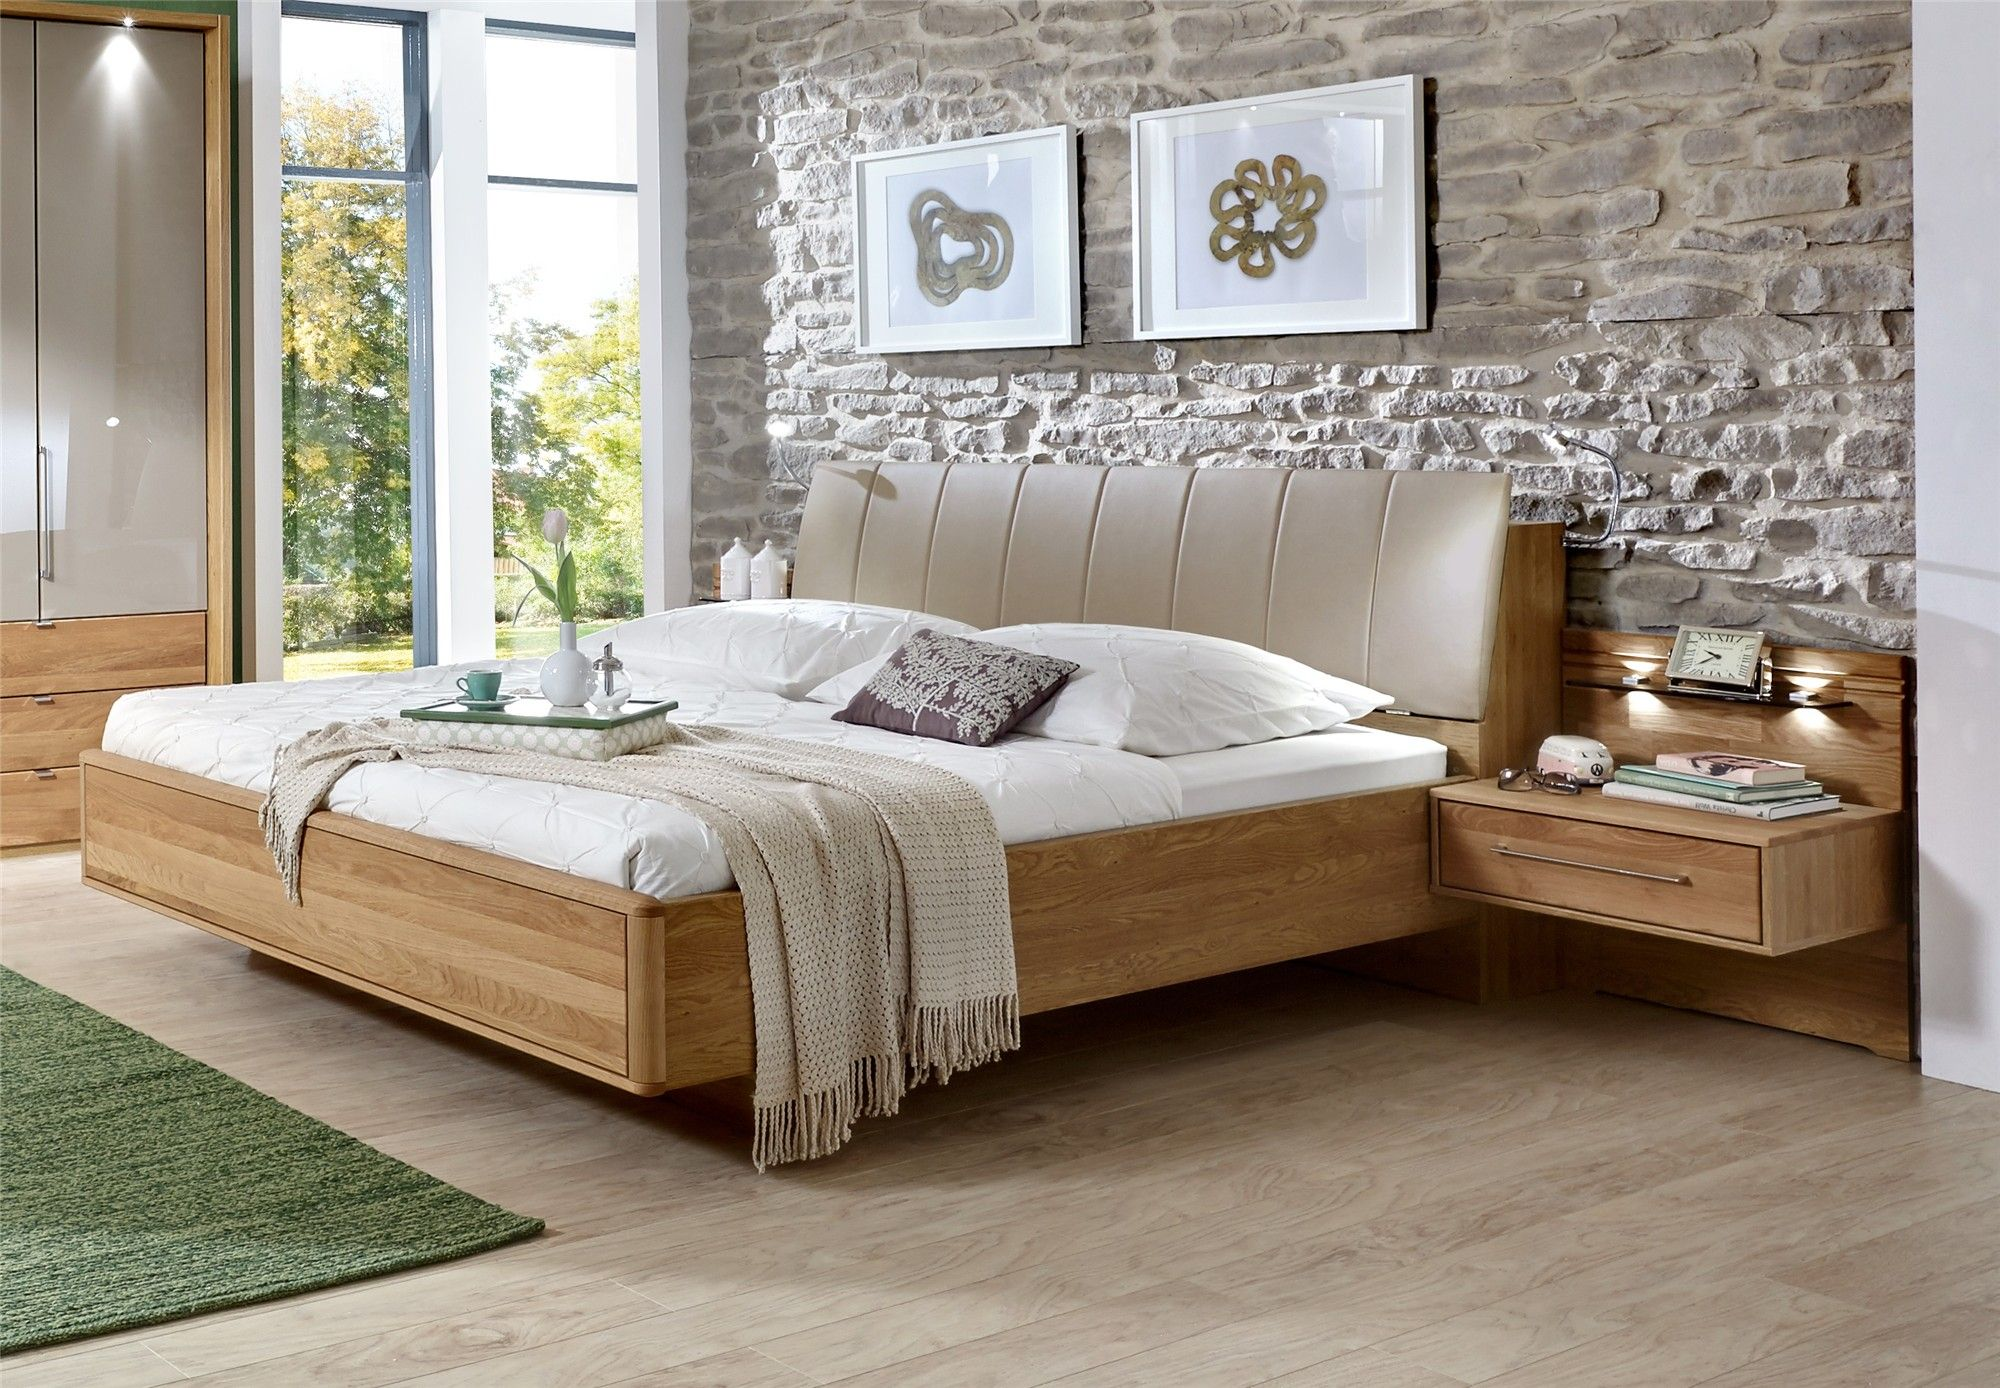 stylform selene semi solid oak faux leather modern bed 16304 | 15d88167c43ba322595e93808798b1f4